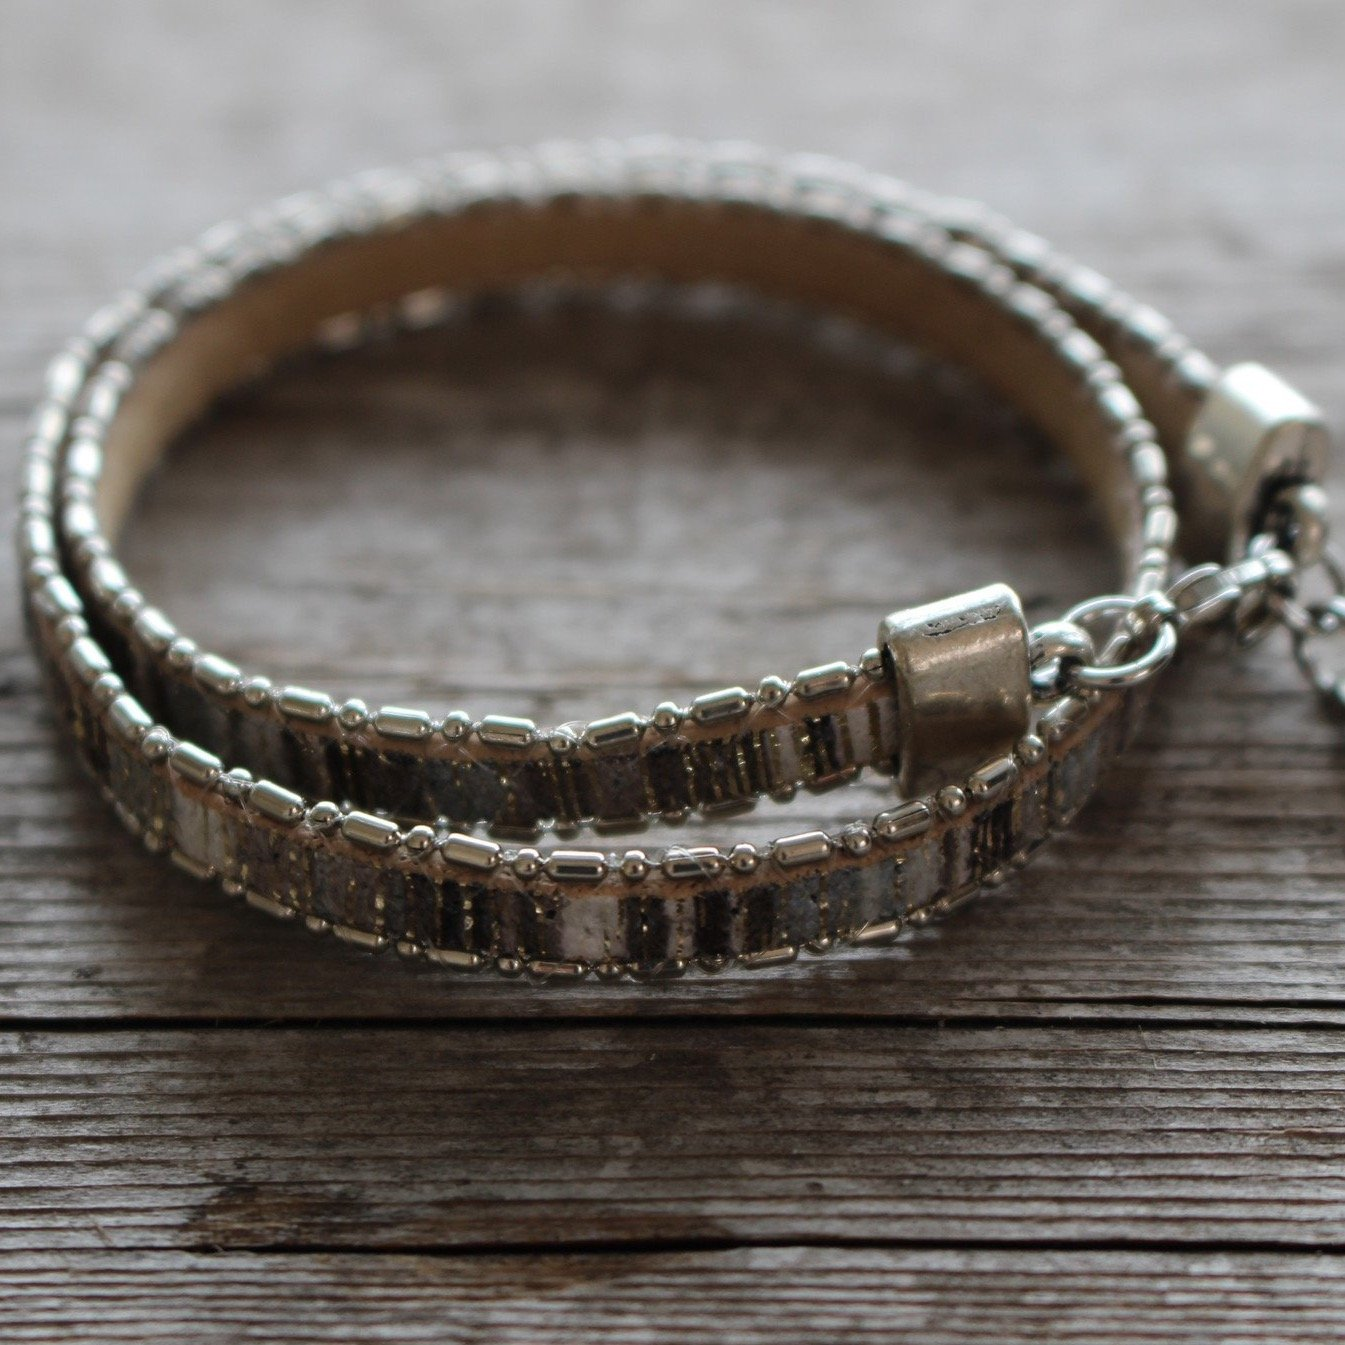 Double bracelet bracelet in shiny white and gray leather. Handmade